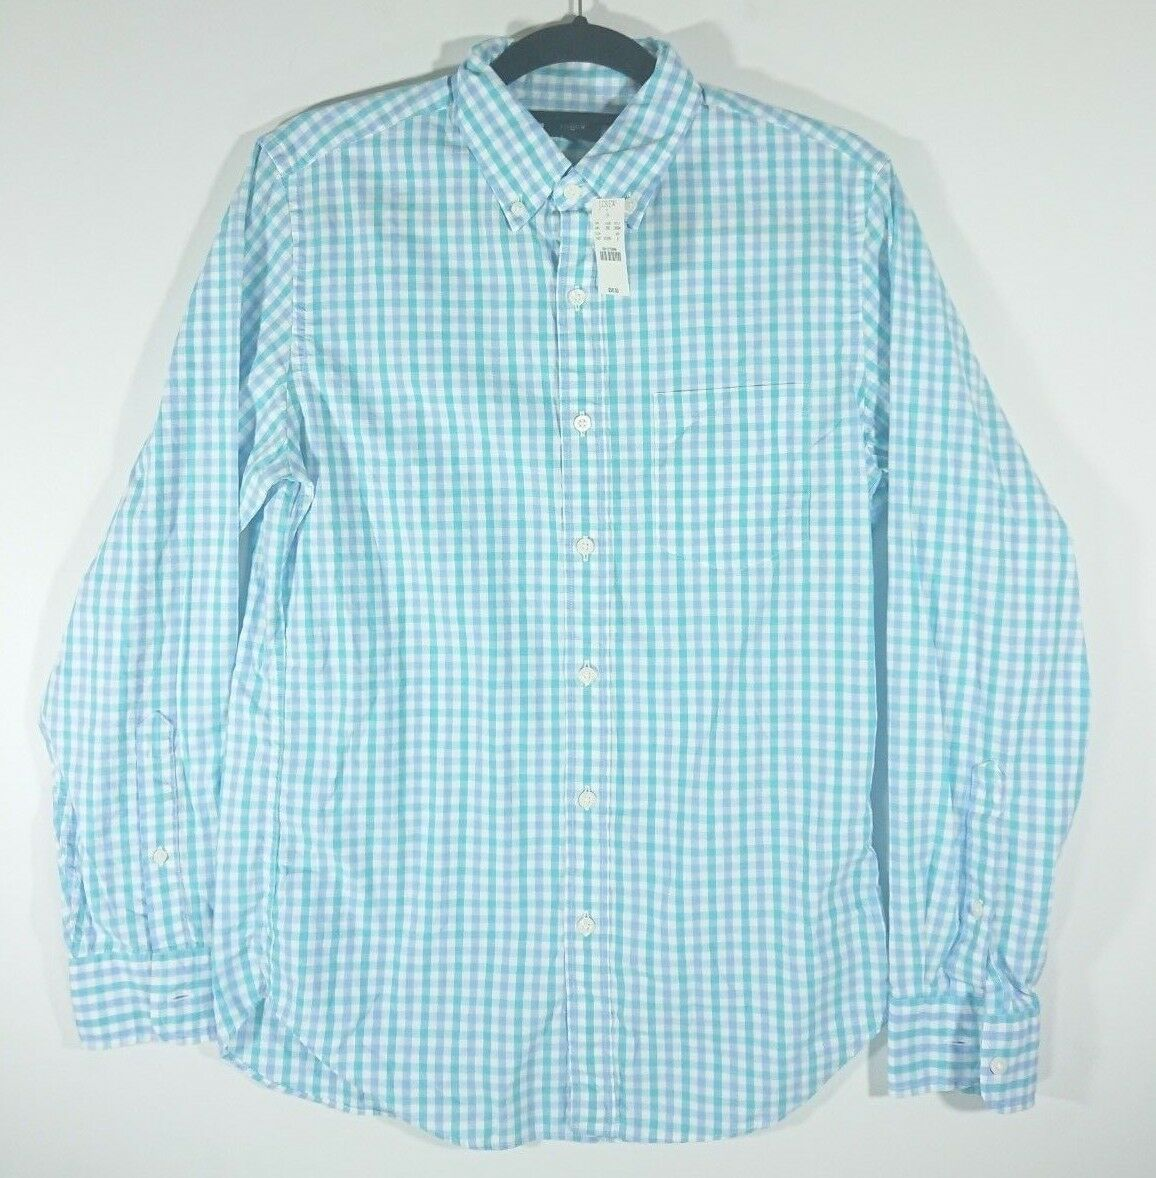 NWT J Crew Men's Small Long Sleeve Button Down Shirt MSRP